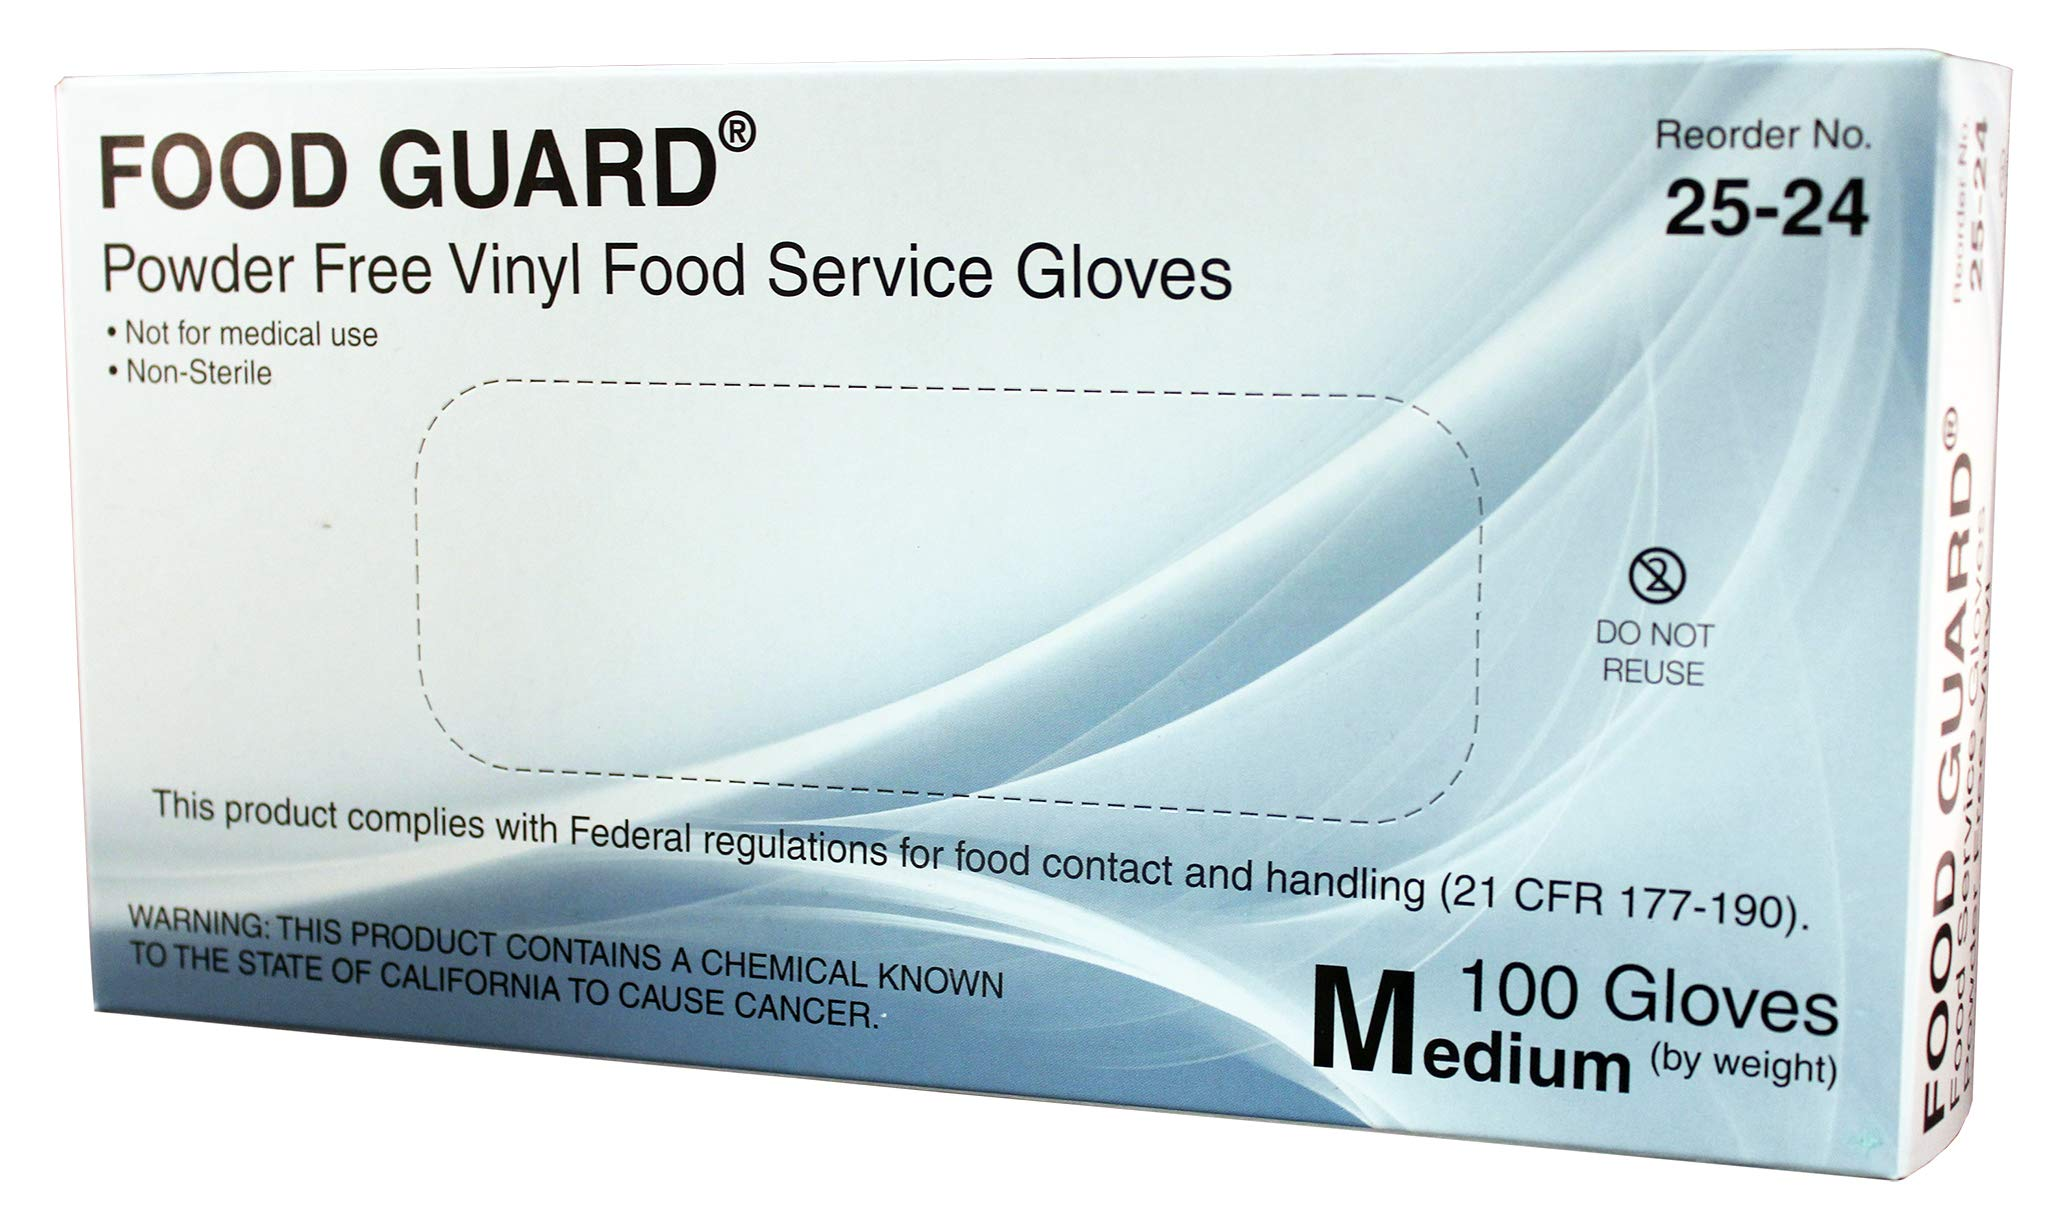 Food Guard Food Service Glove Vinyl Powder Free X-Large 25-28 10 Boxes, 100 /Box